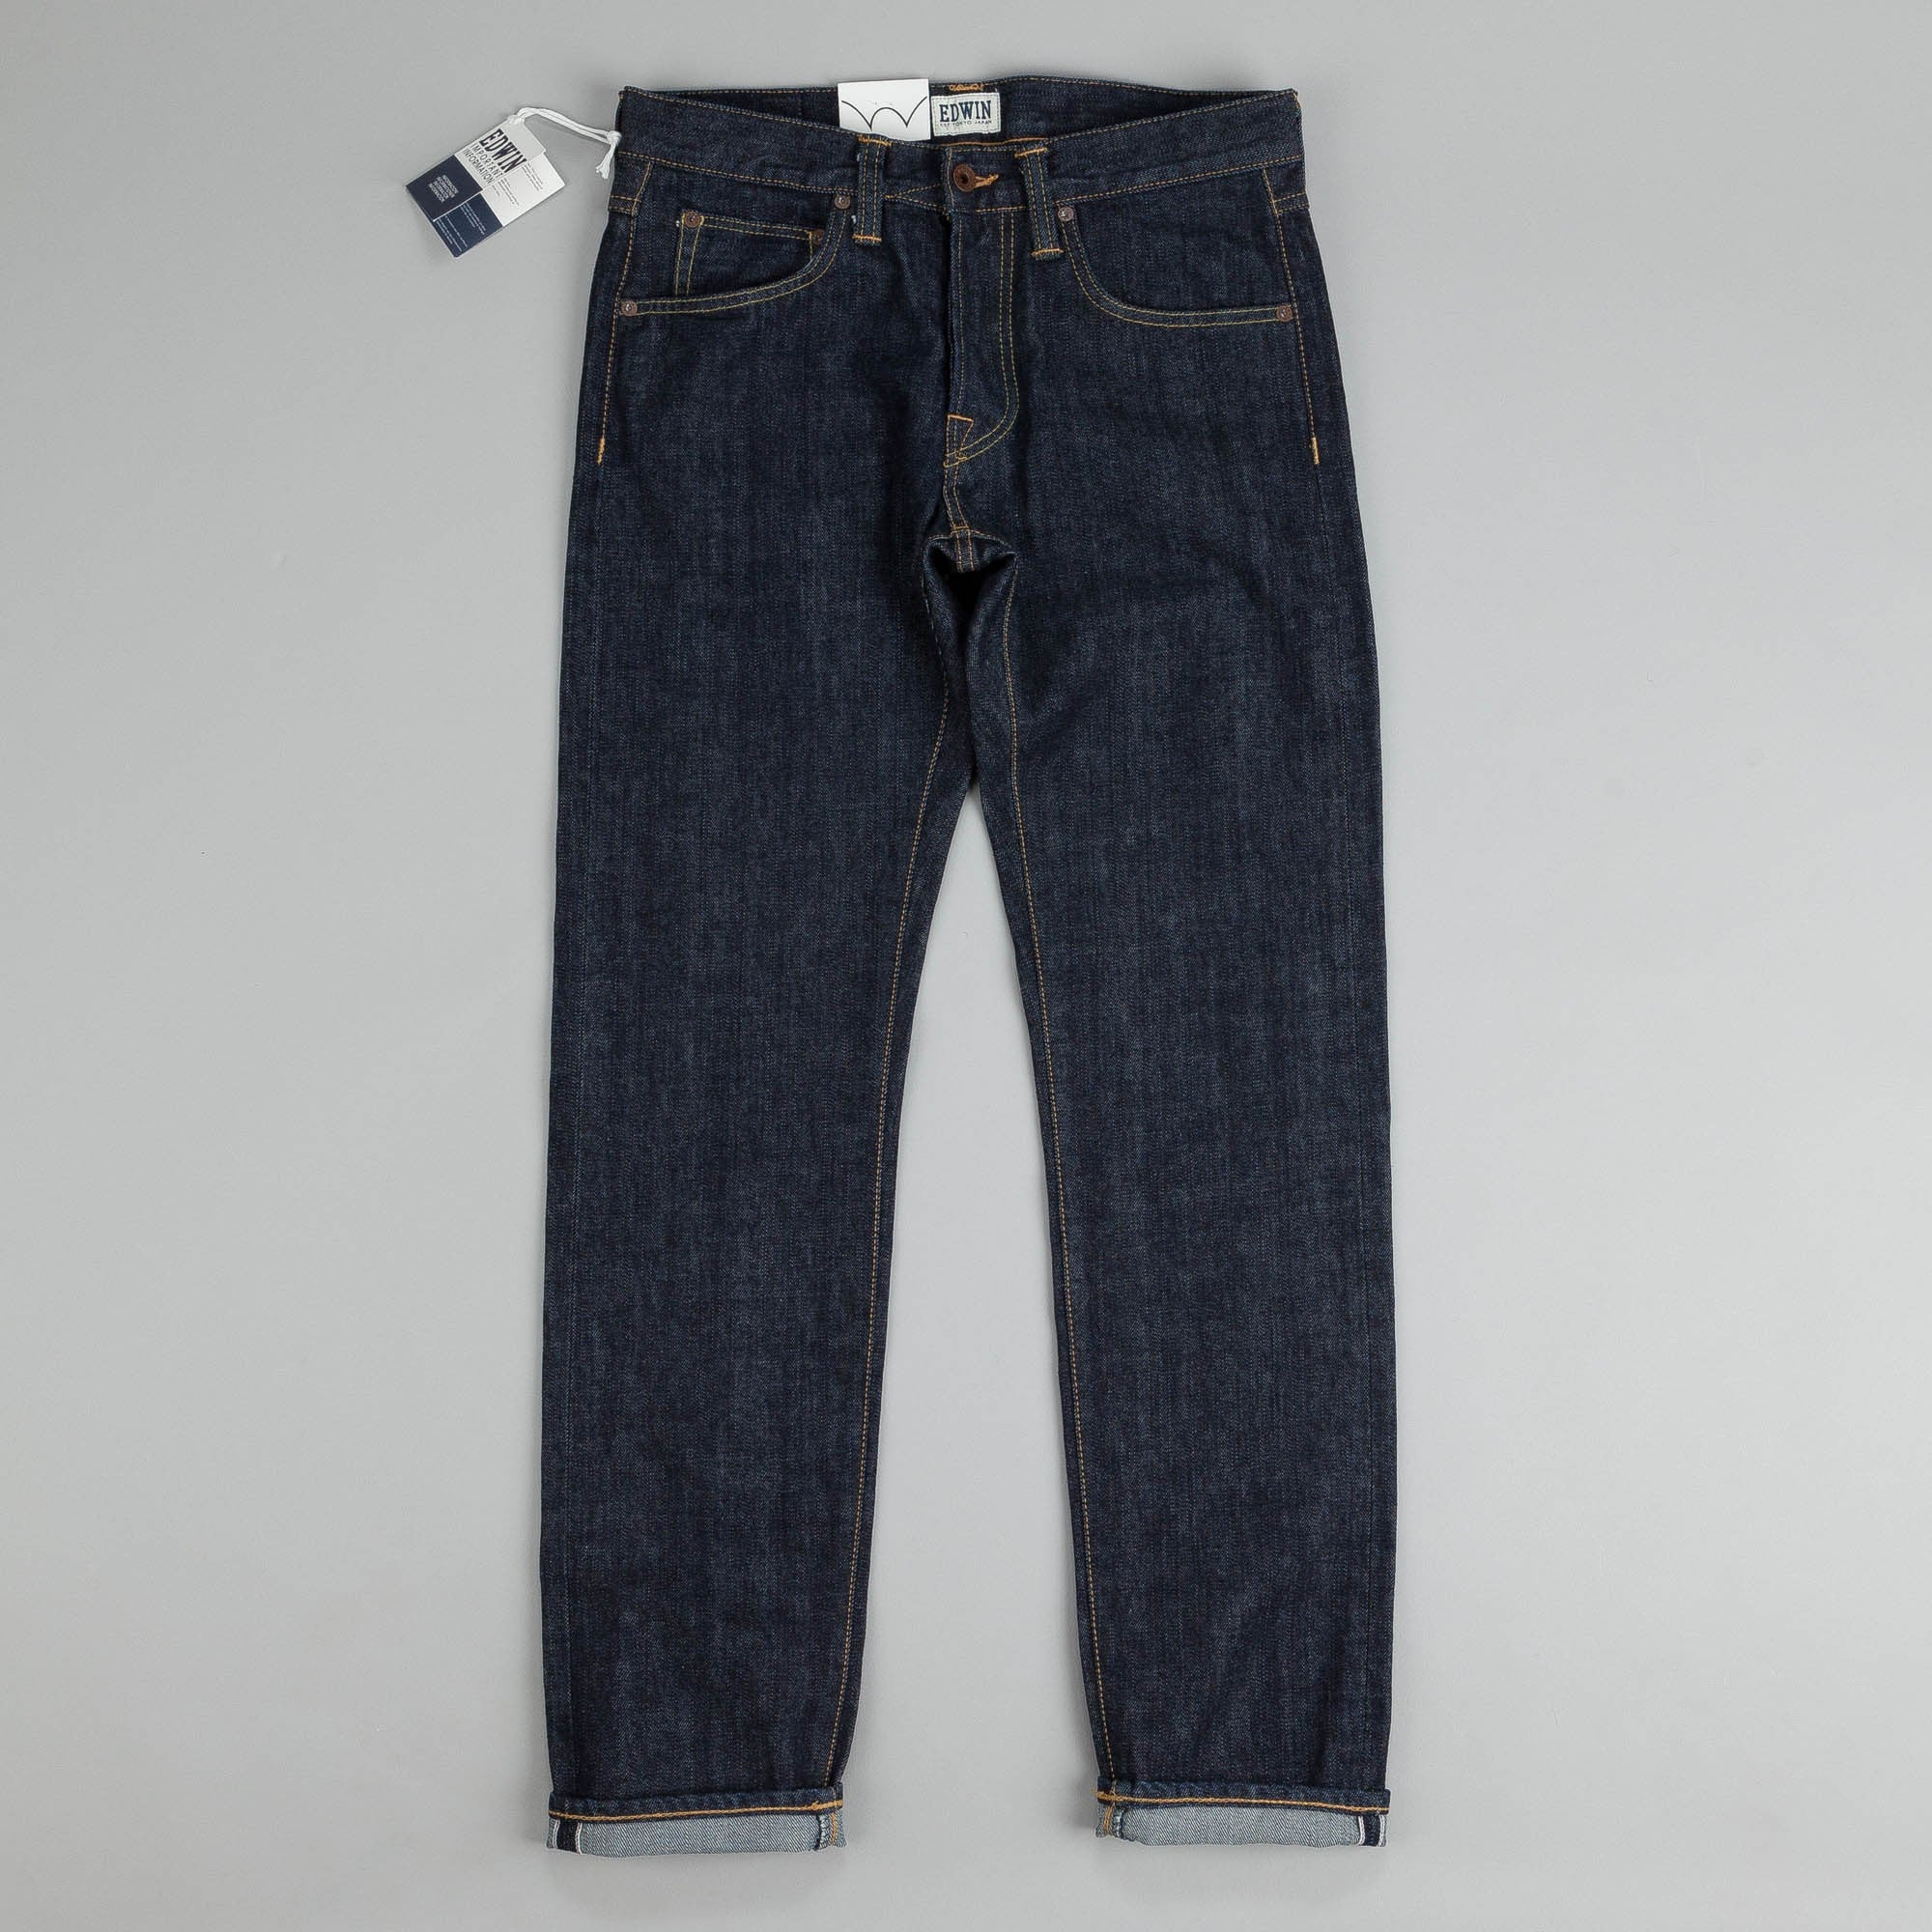 Edwin ED-55 Red Listed Selvage Jeans - Blue Rinsed